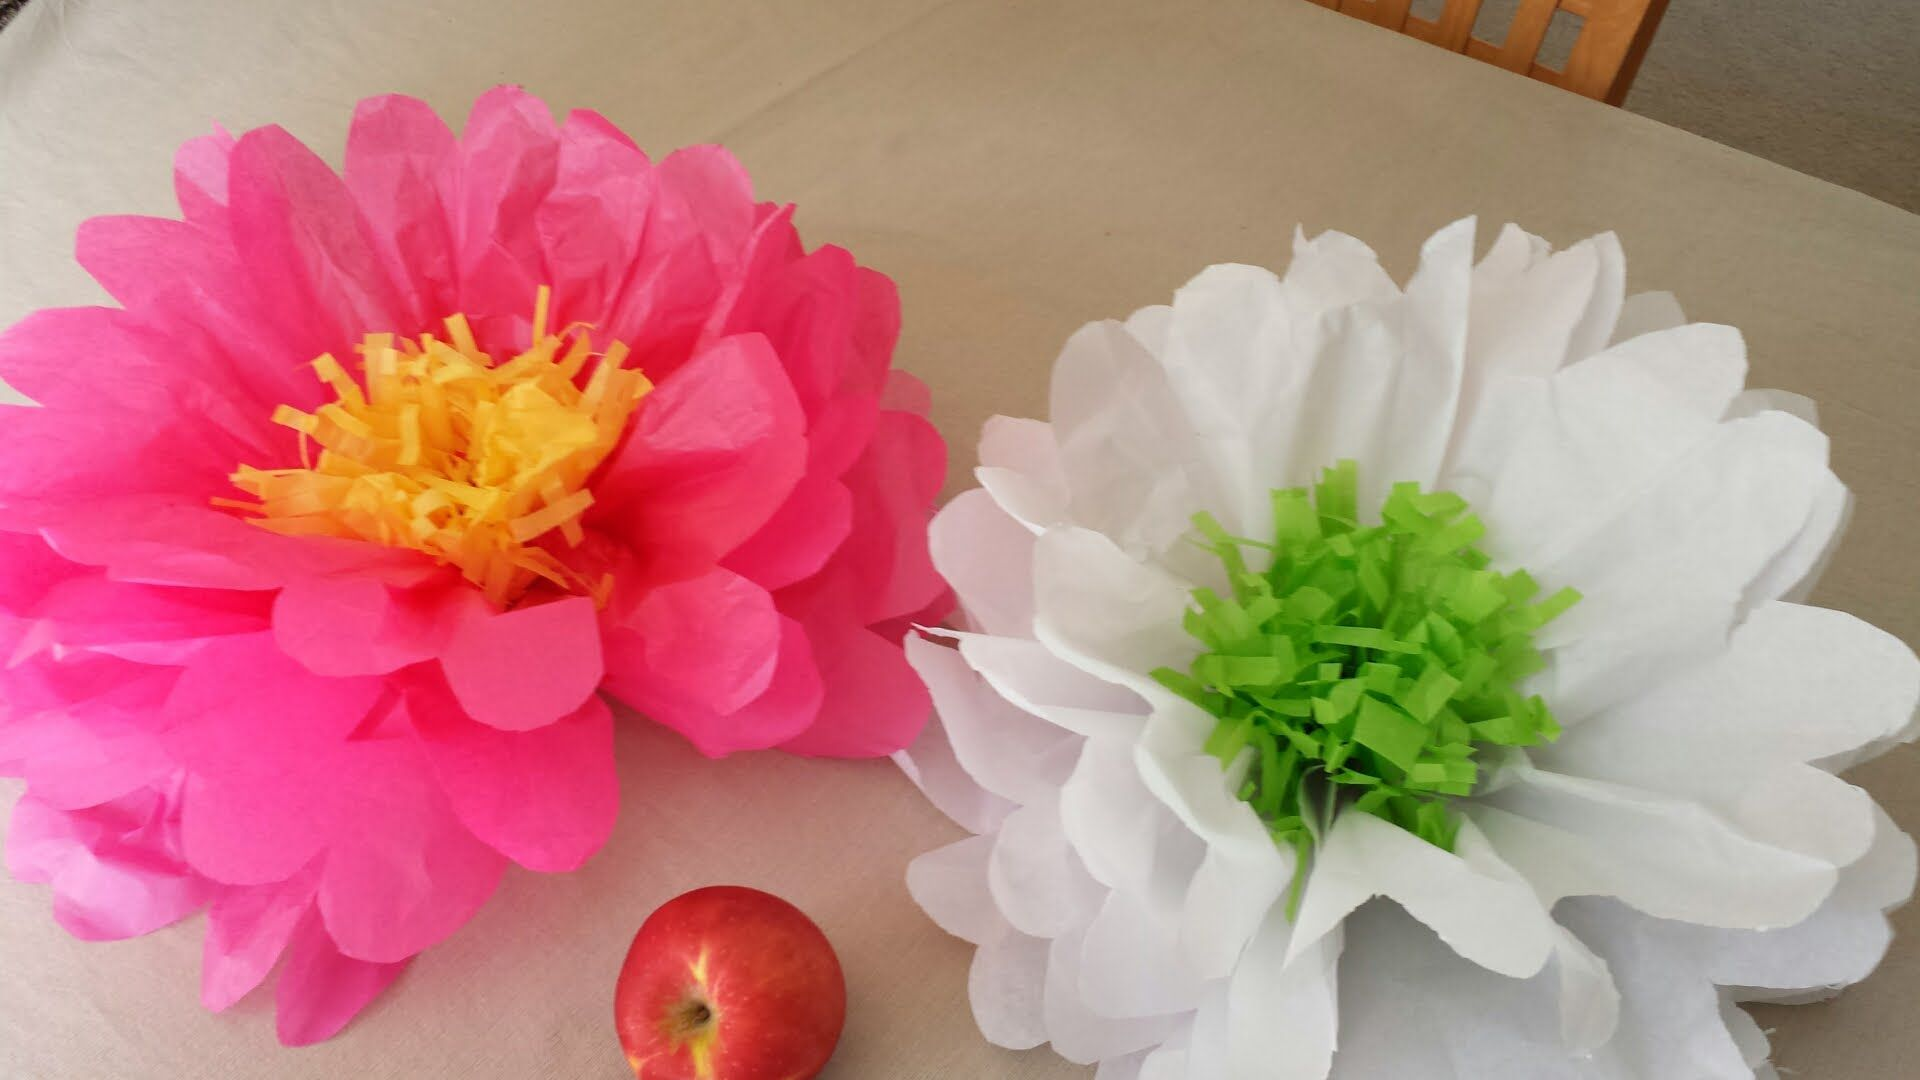 How To Make Giant Tissue Paper Flowers Tissue Decorations